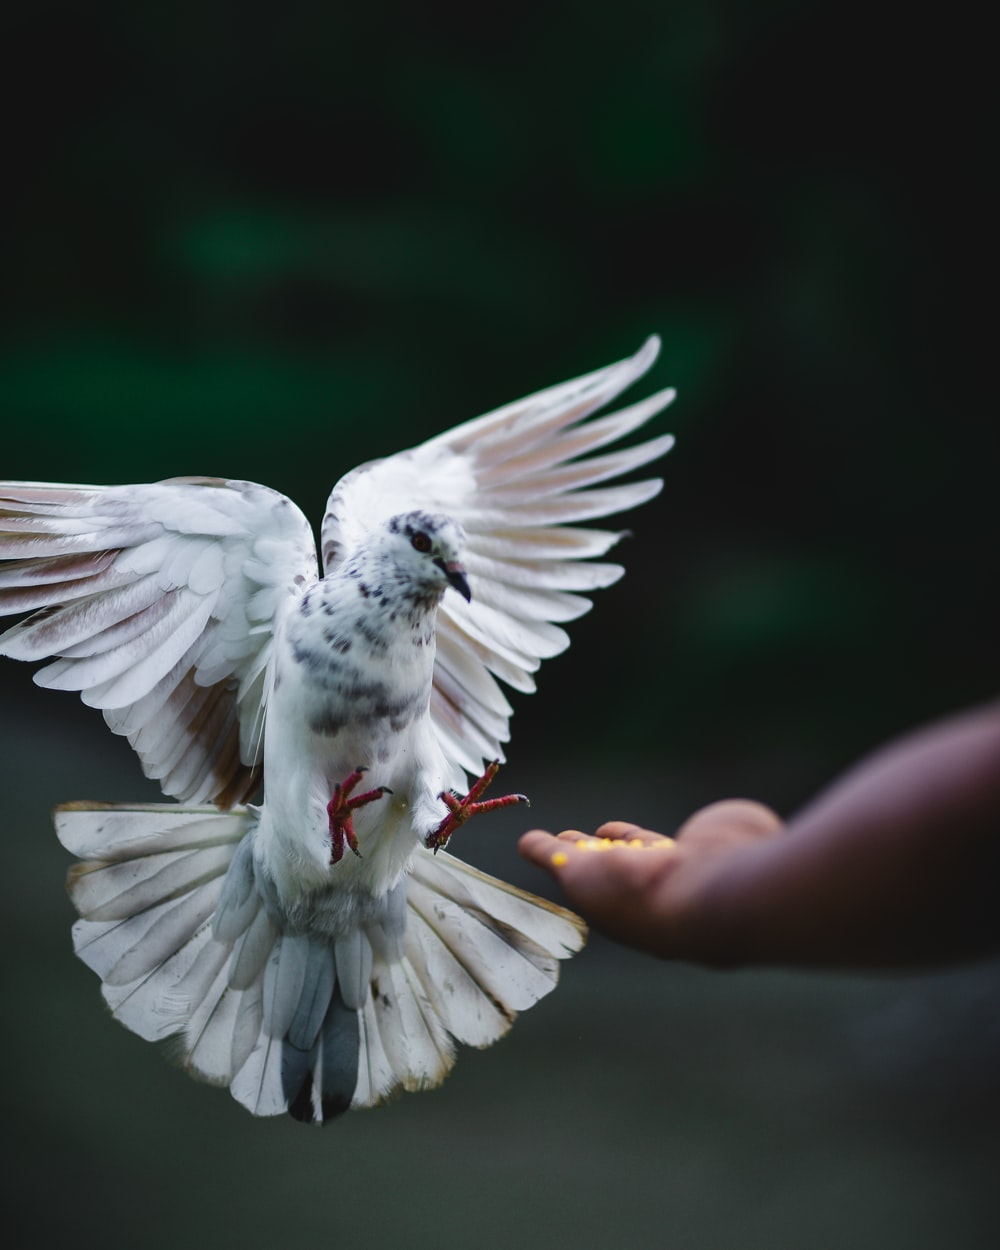 rock dove flying beside hand